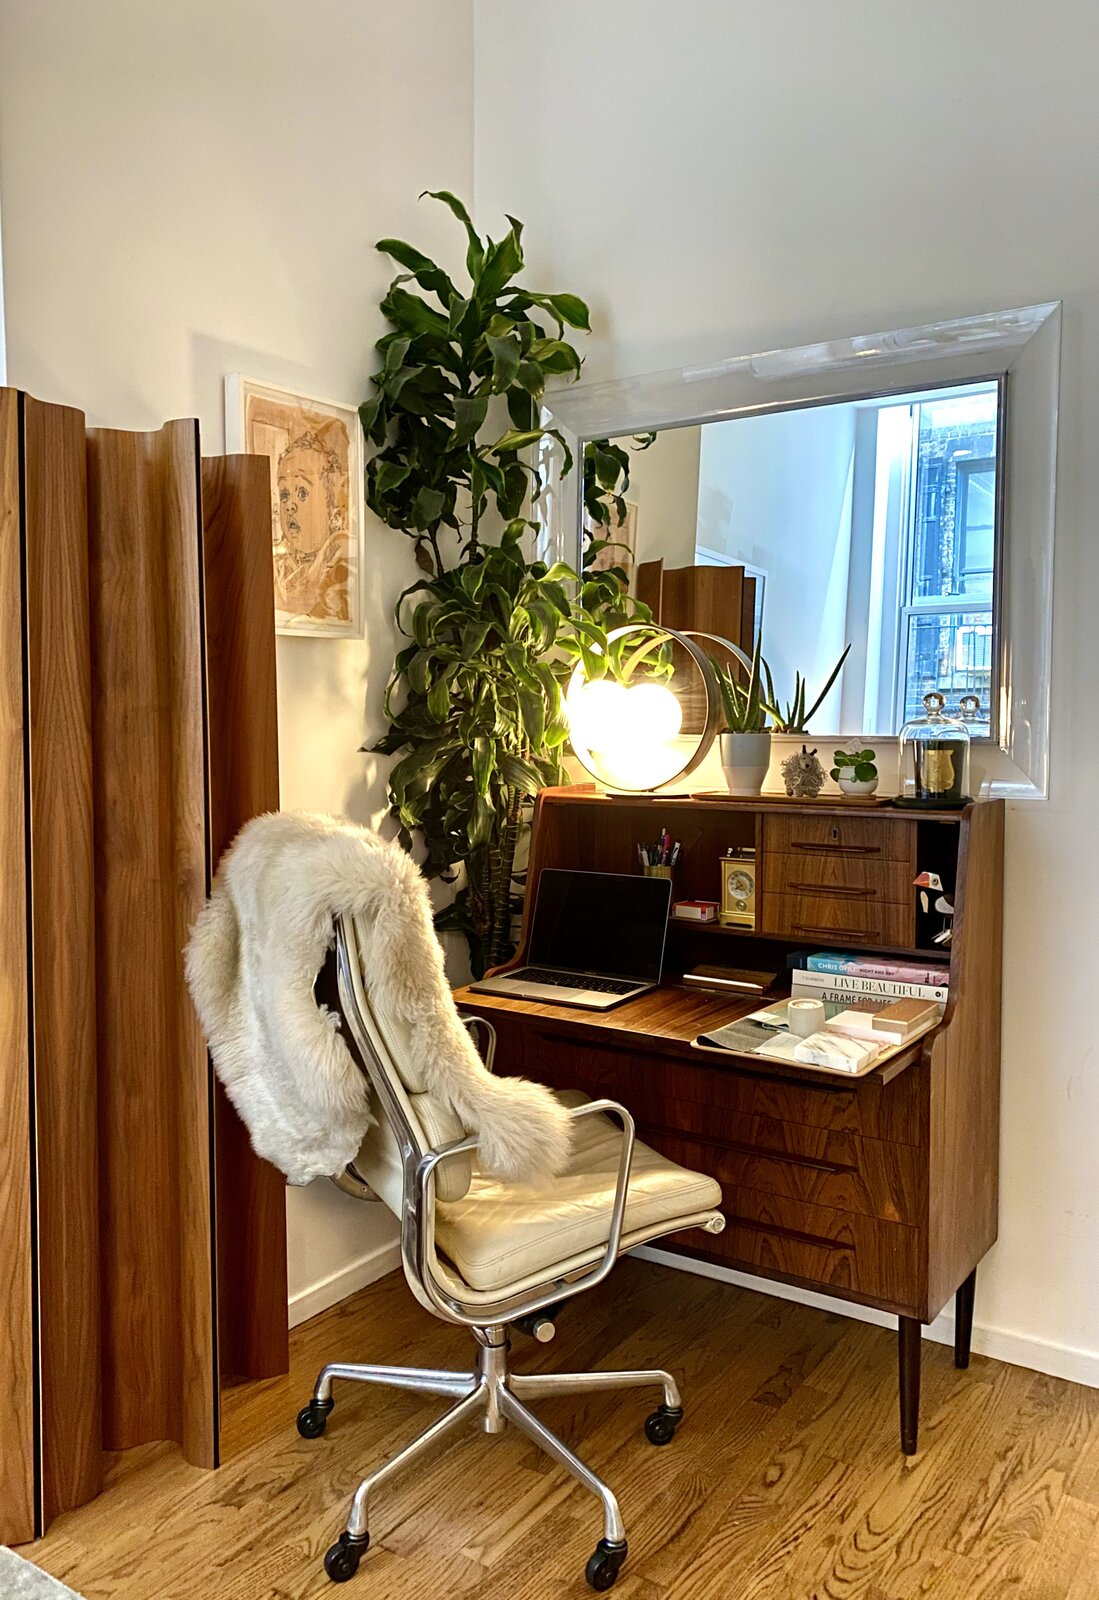 Though the office nook in designer Nina Blair's Tribeca loft has limited views, she brings in plants and natural wood textures to place an emphasis on the organic.  Photo 14 of 30 in How the Pandemic Is Reshaping Interior Design So Far